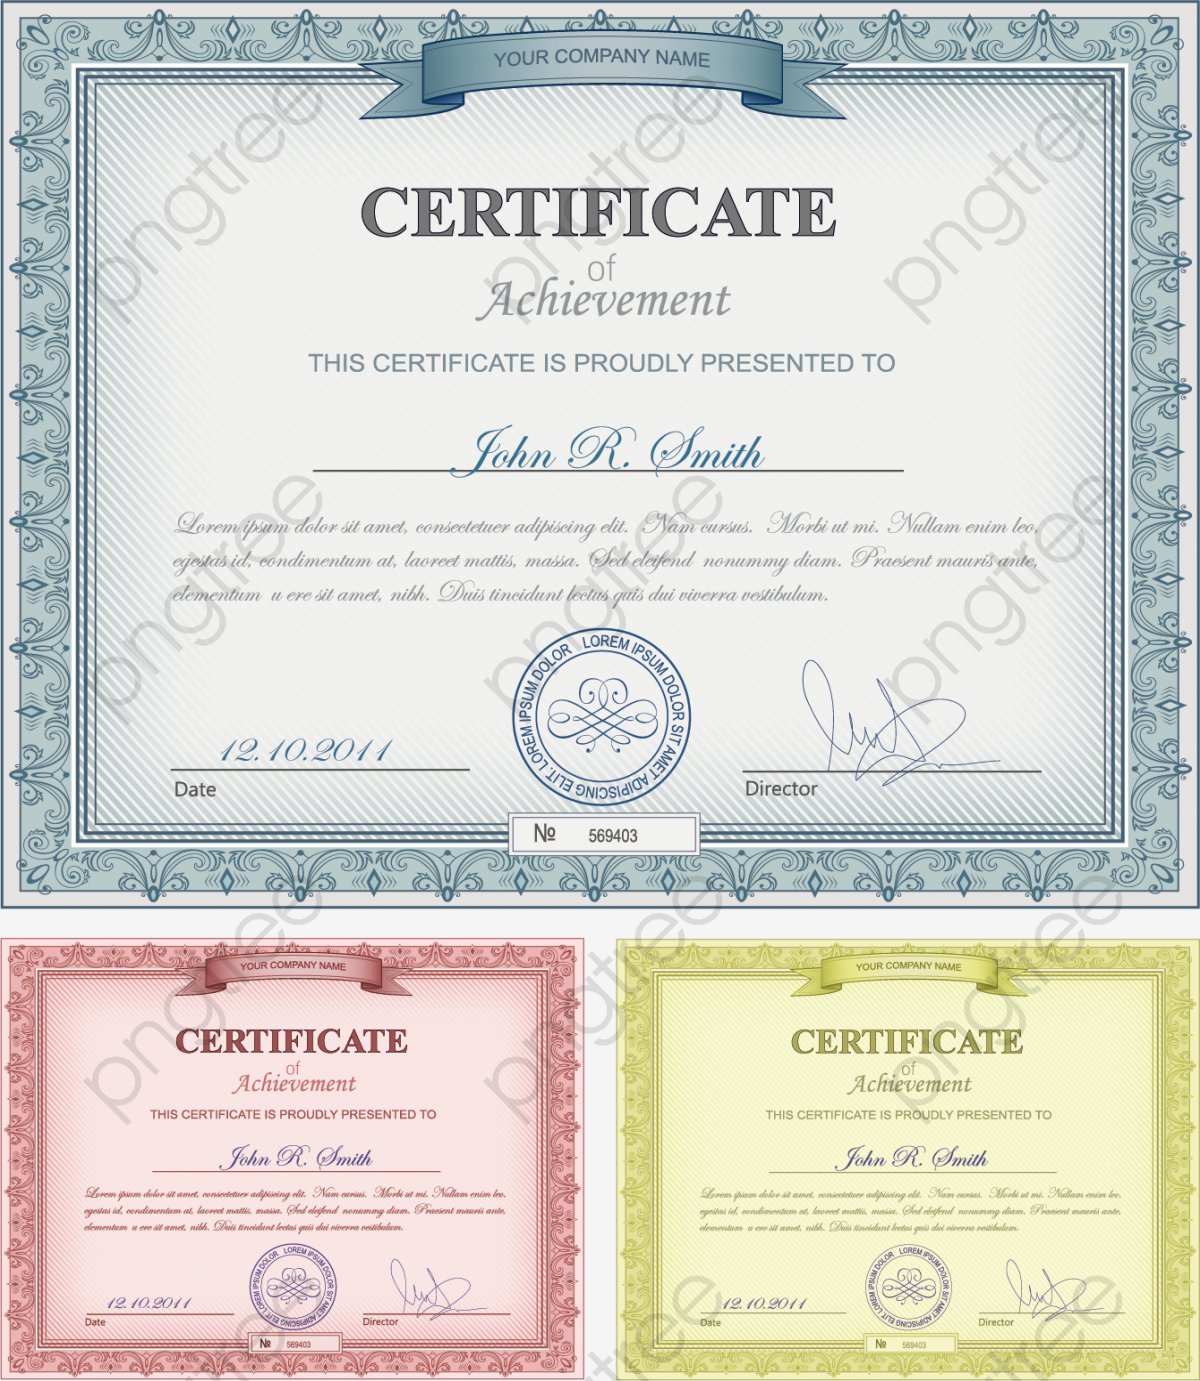 Transparent European Certificate Template PNG Format Image